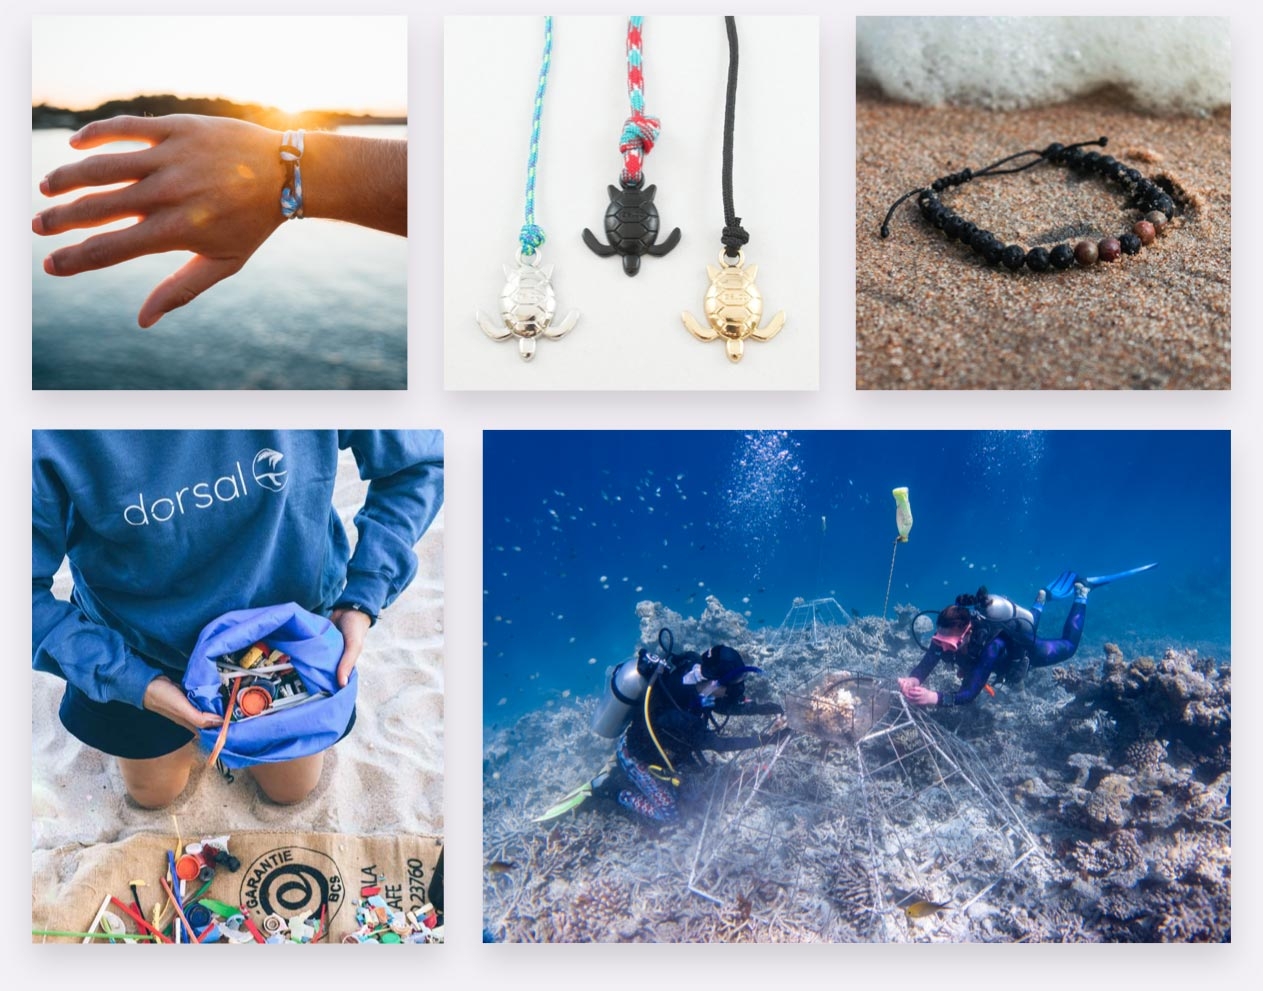 Dorsal brand imagery, products, cleaning beaches, coral restoration